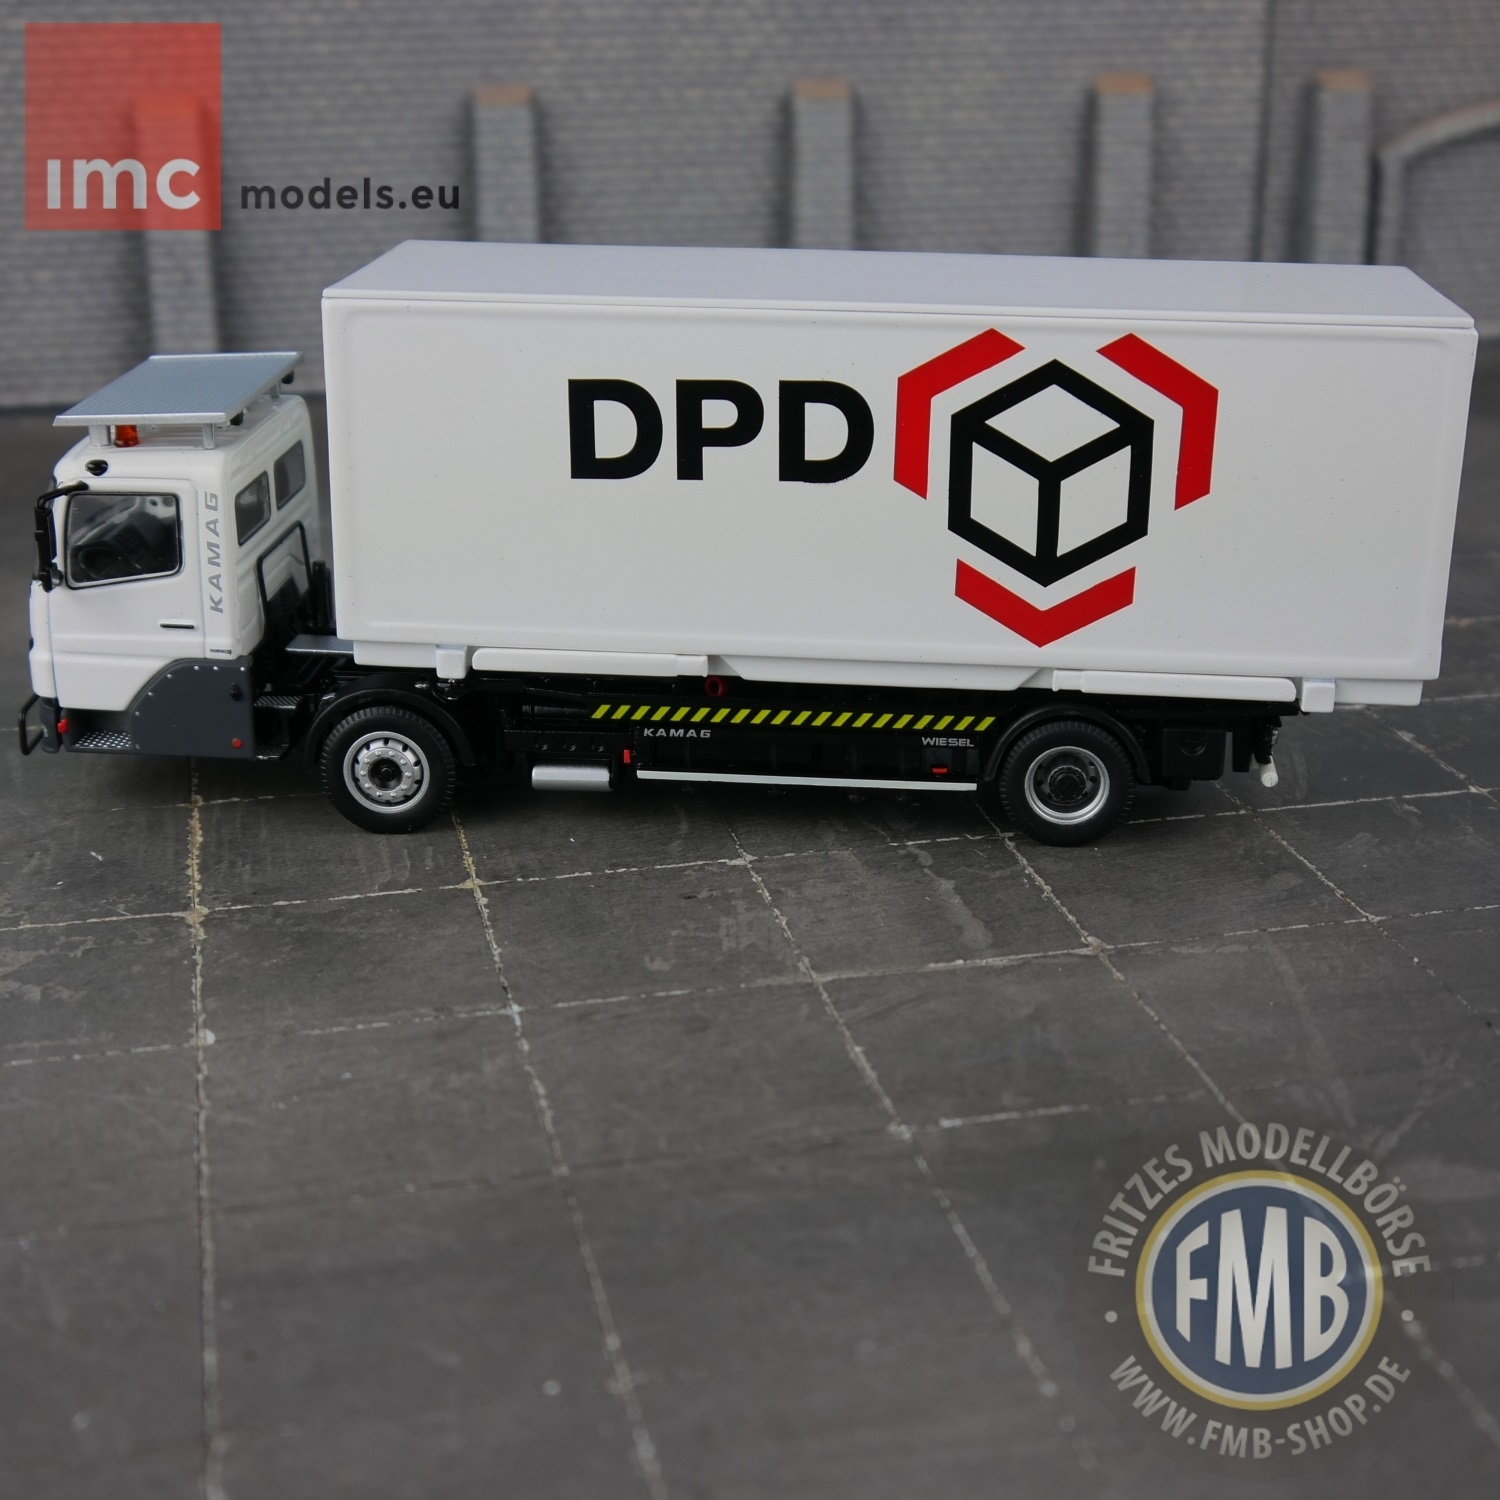 64214809 - KAMAG Wiesel Truck with KAMAG Container -DPD-